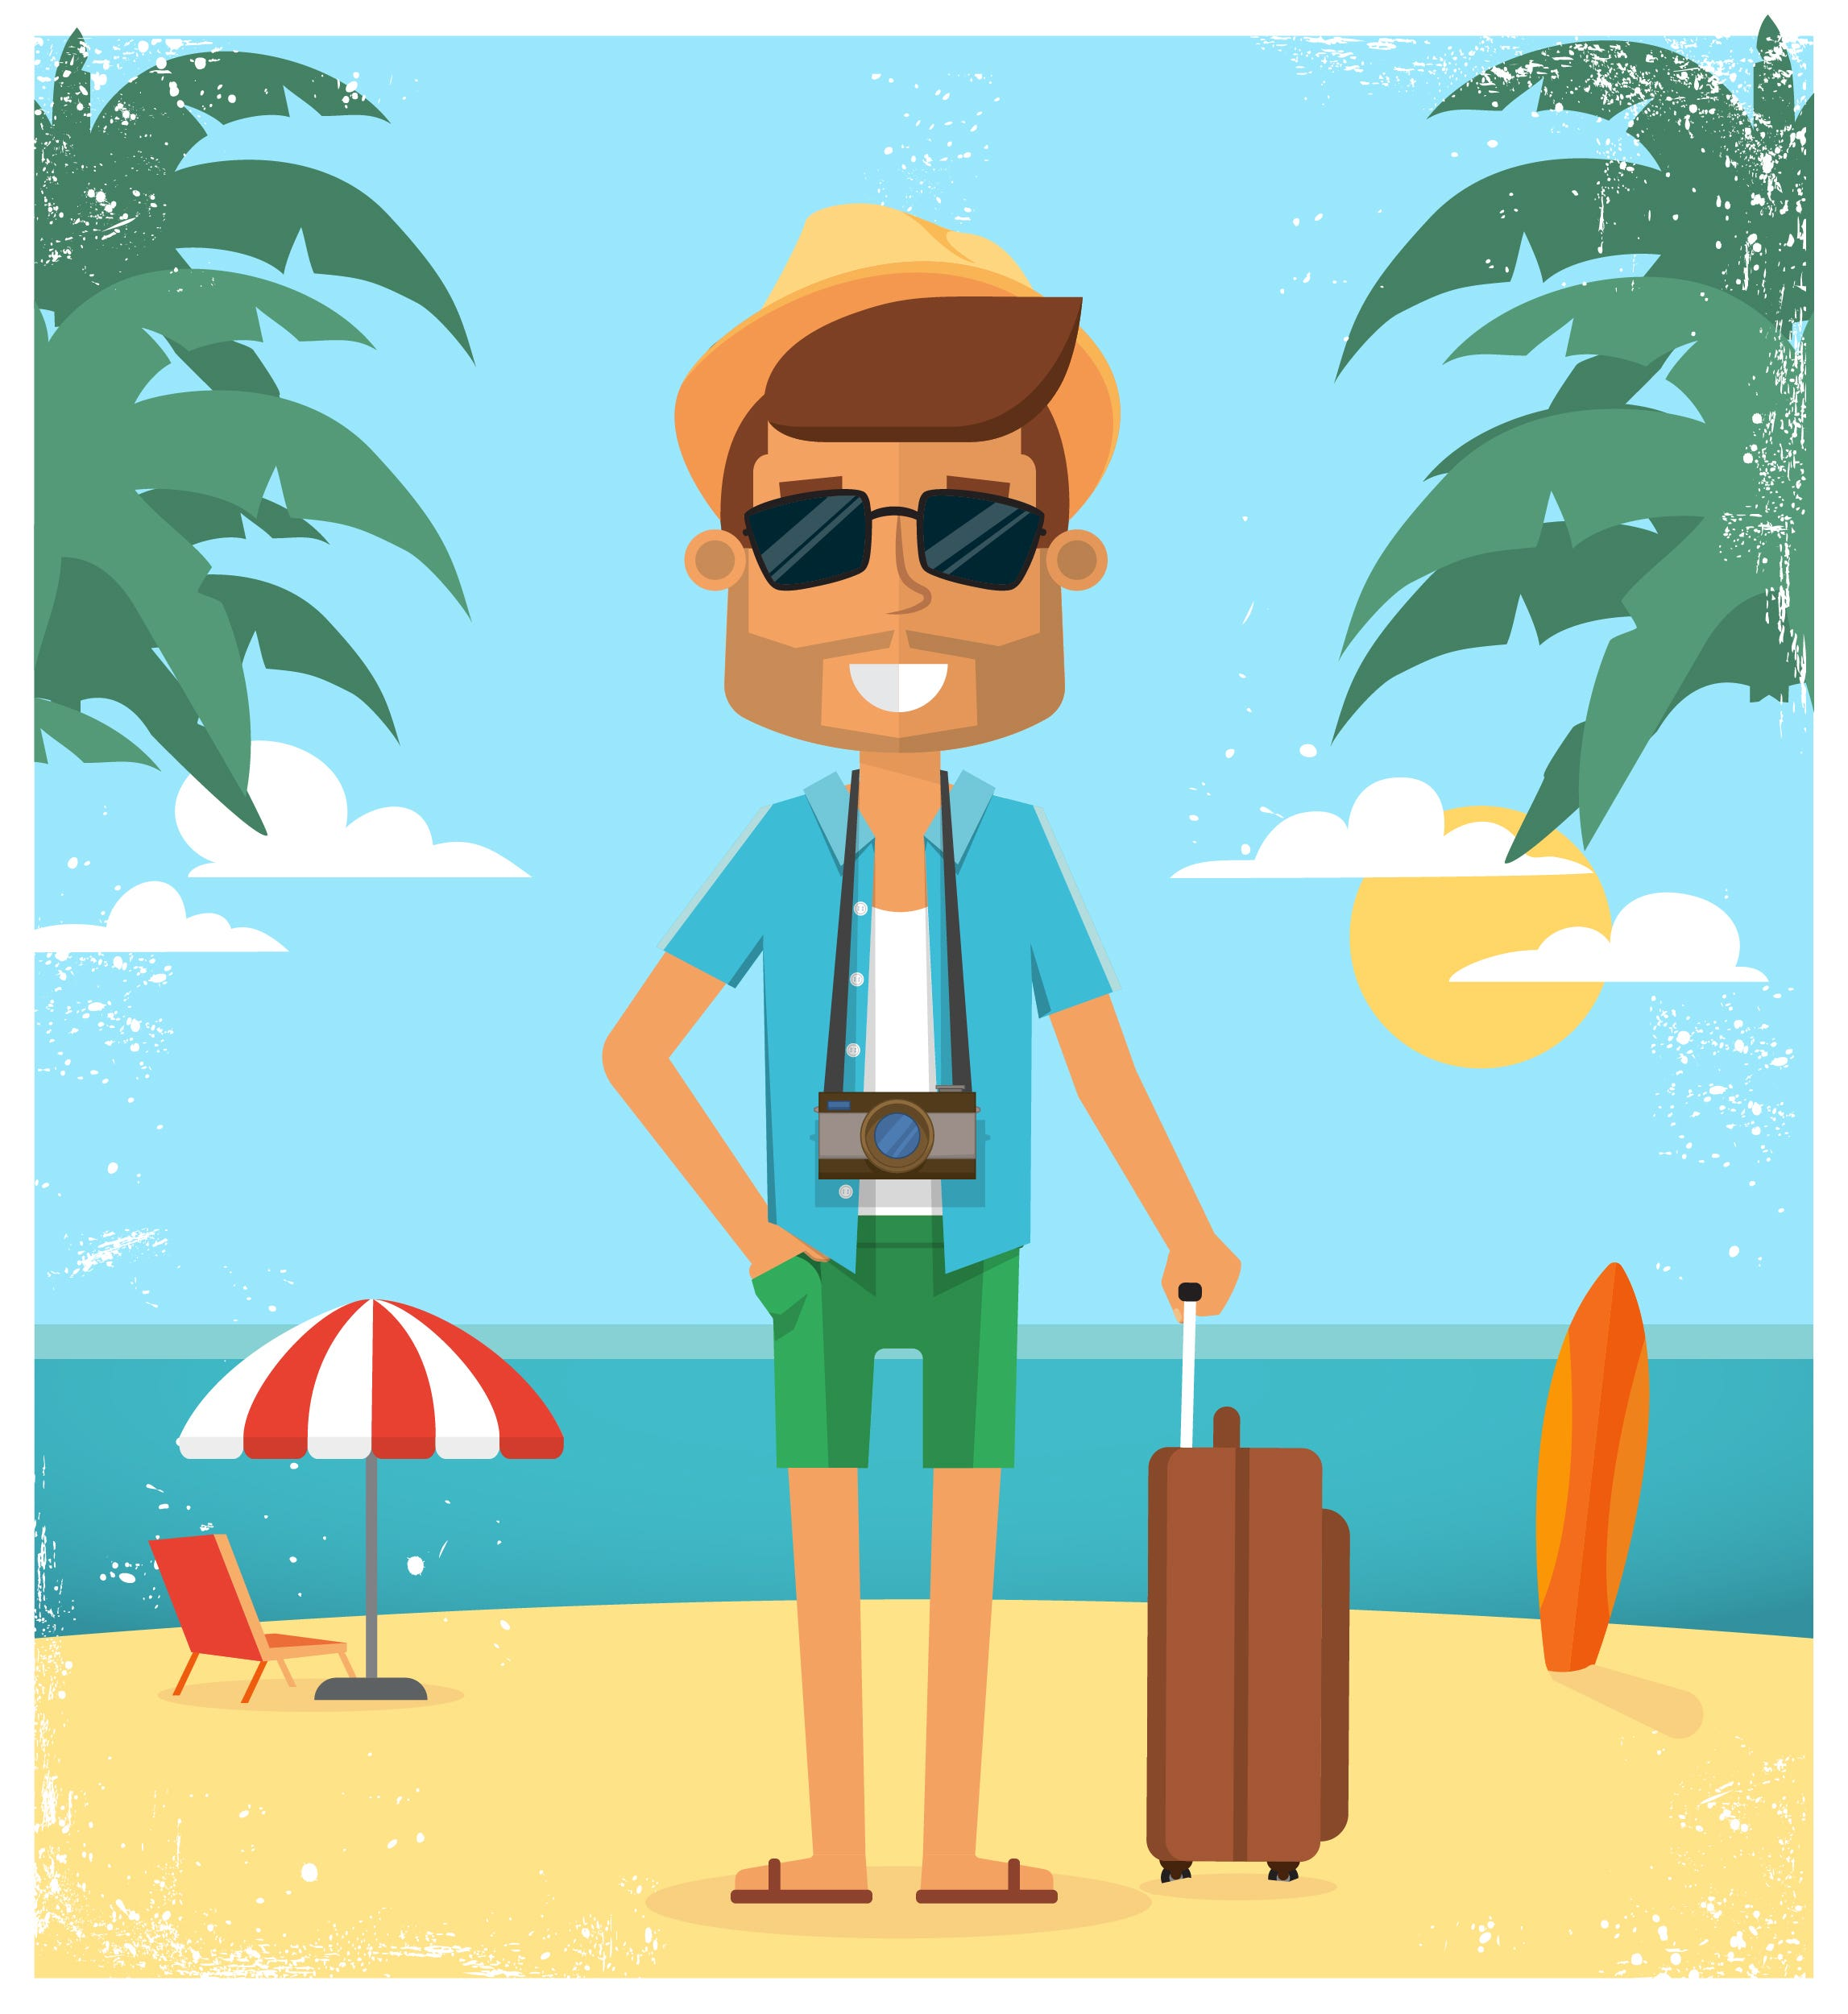 ummer vacation with character design. Vector illustration